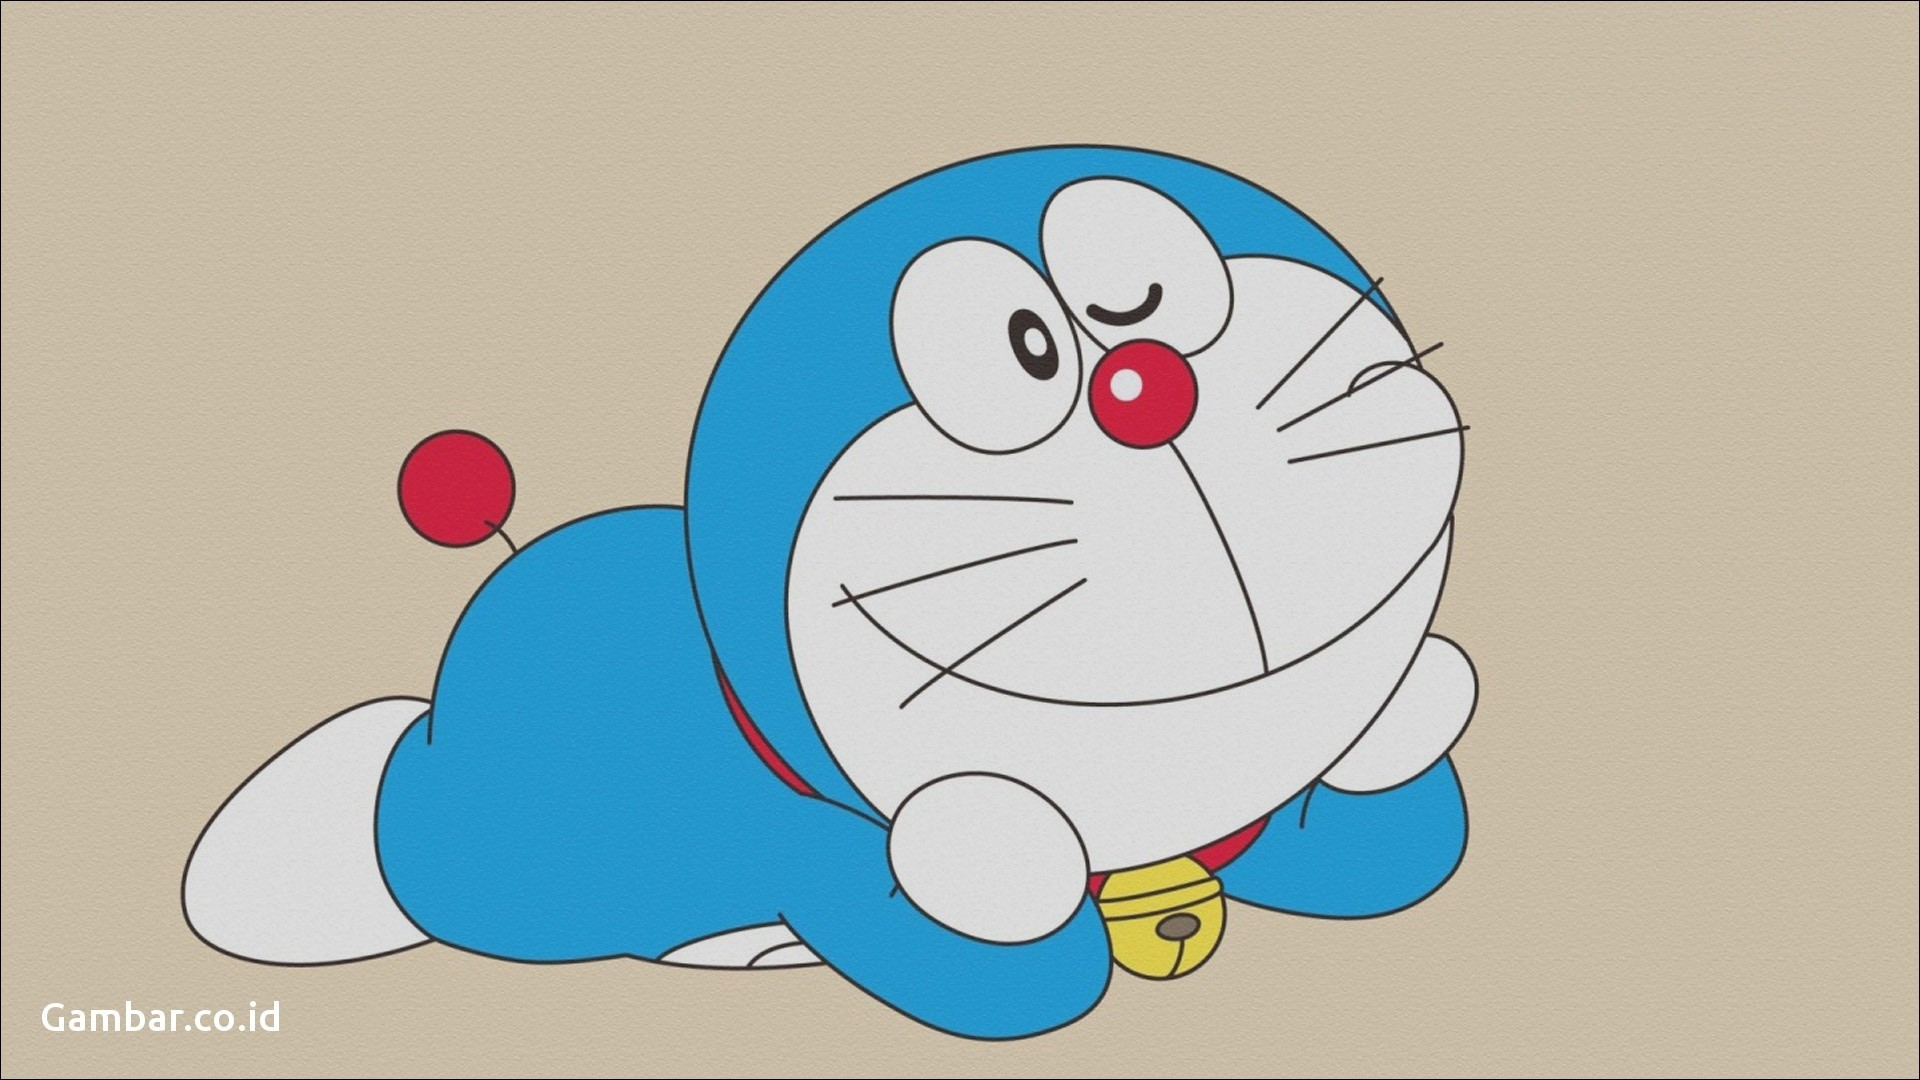 Download Gambar Wallpaper Doraemon Wallpaper Doraemon 3d Stand by Kumpulan Gambar Keren Doraemon